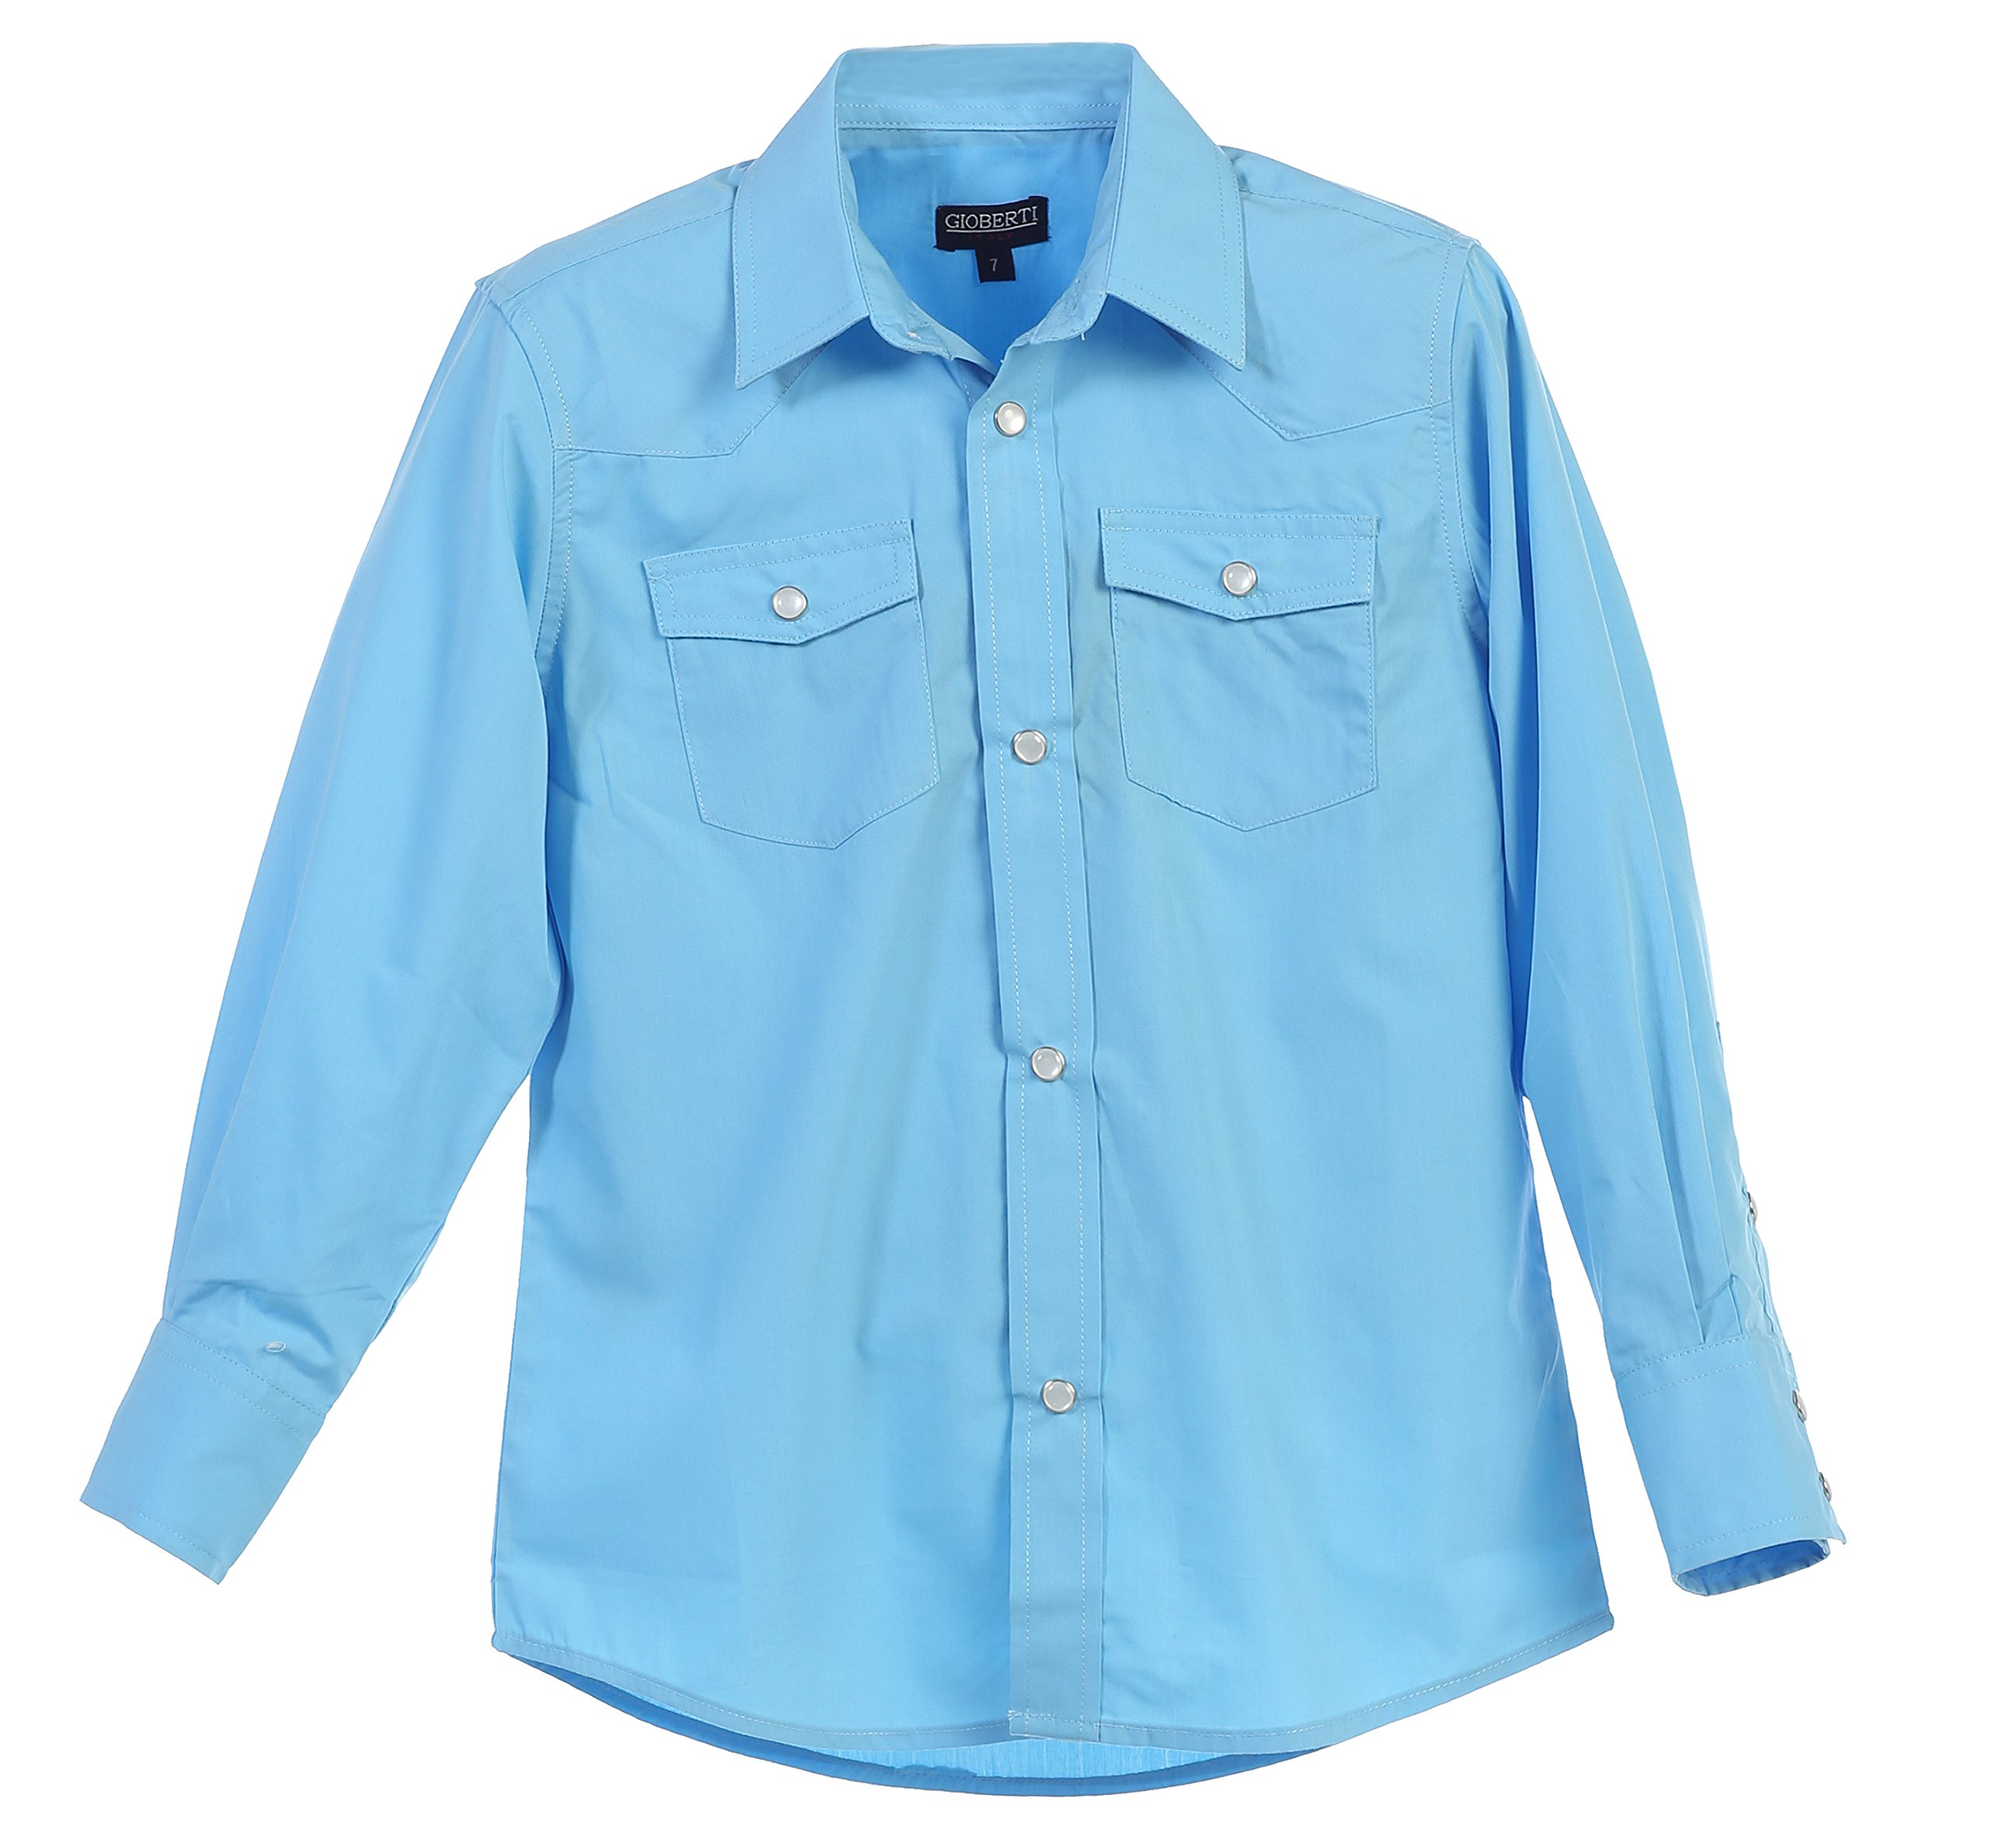 Gioberti Little Boys Casual Western Solid Long Sleeve Shirt With Pearl Snaps, Light Blue, Size 4